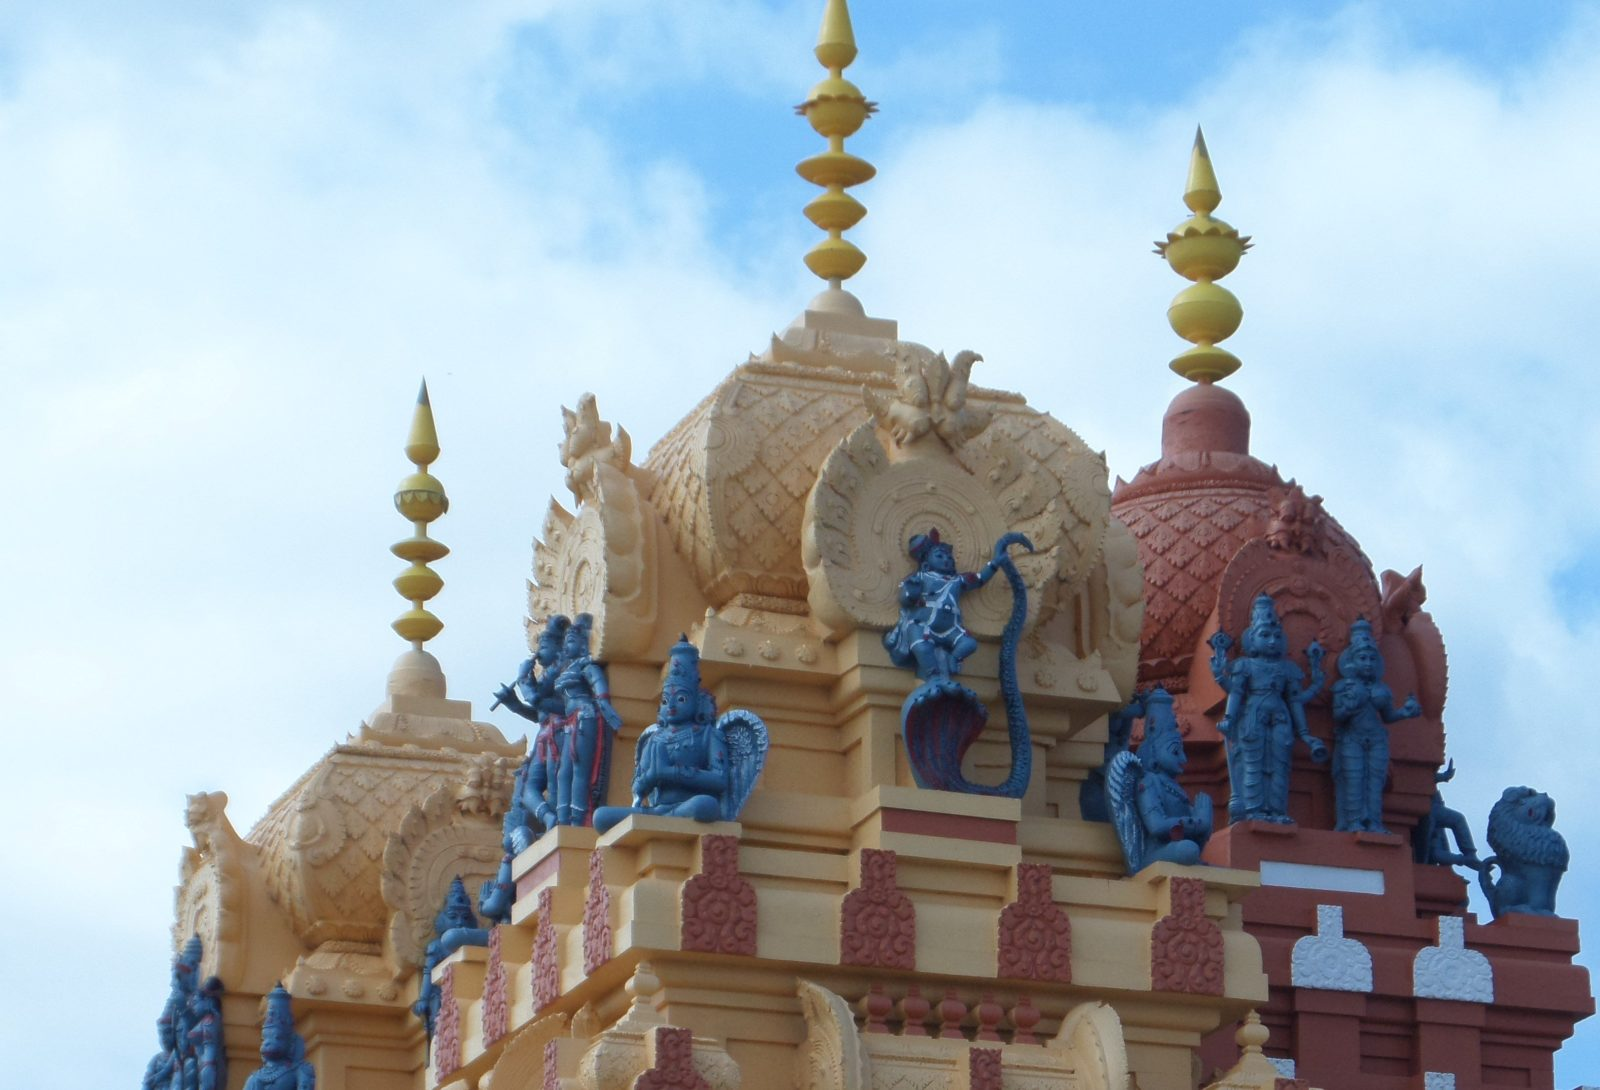 Statues and spires atop the Vishni Siva Mandir Temple and Library